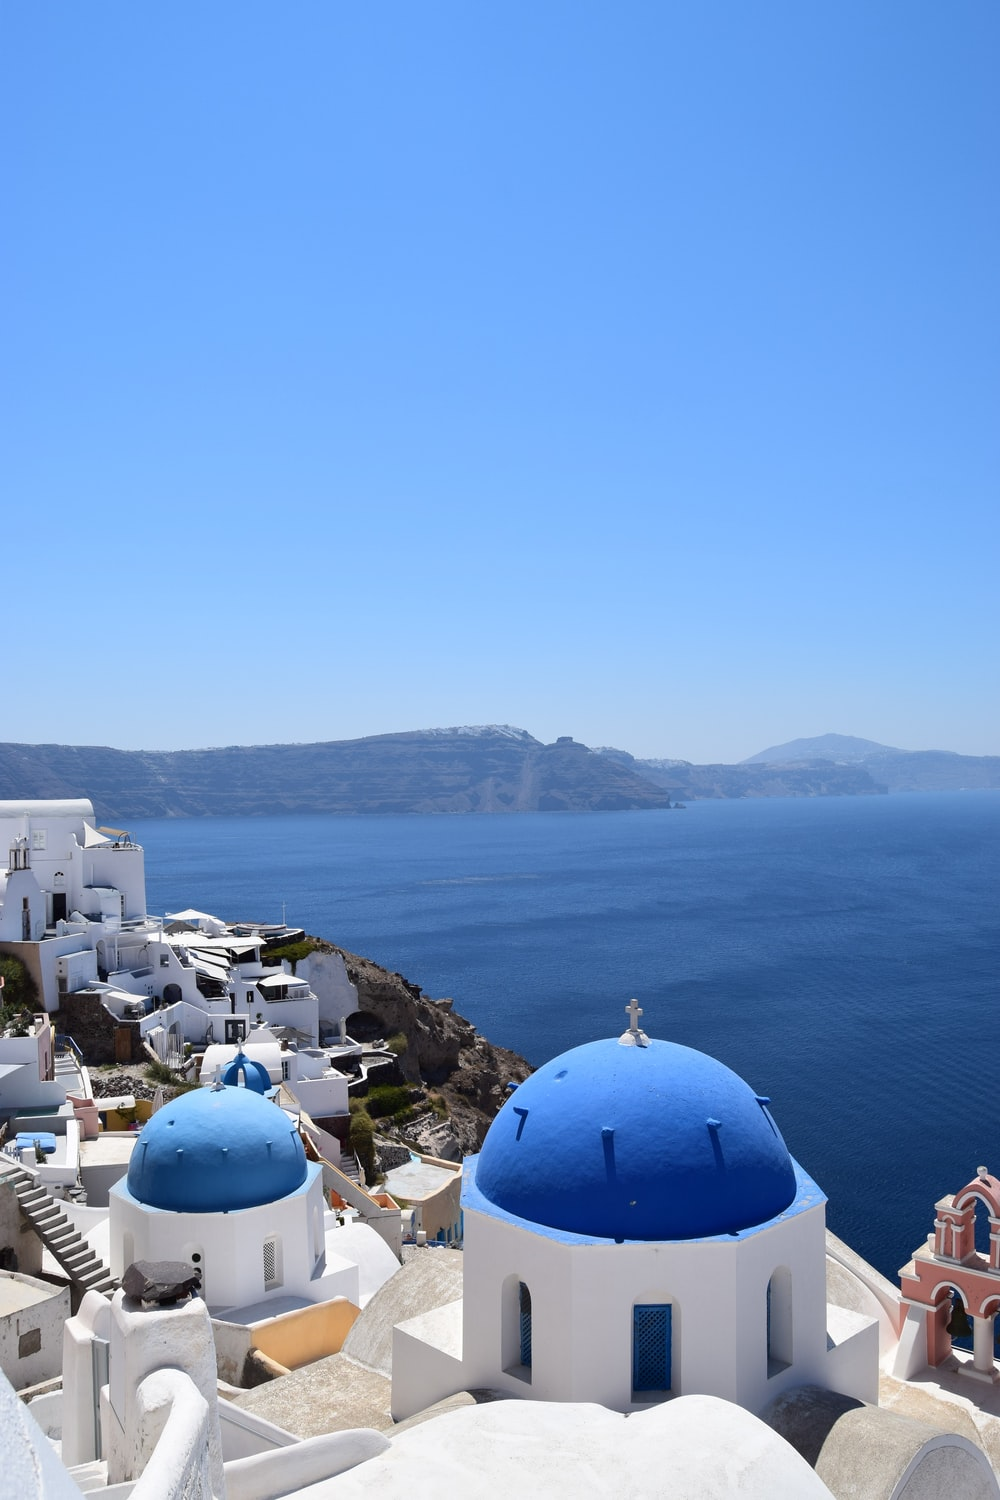 blue dome buidings in Santorini, Greece during daytime